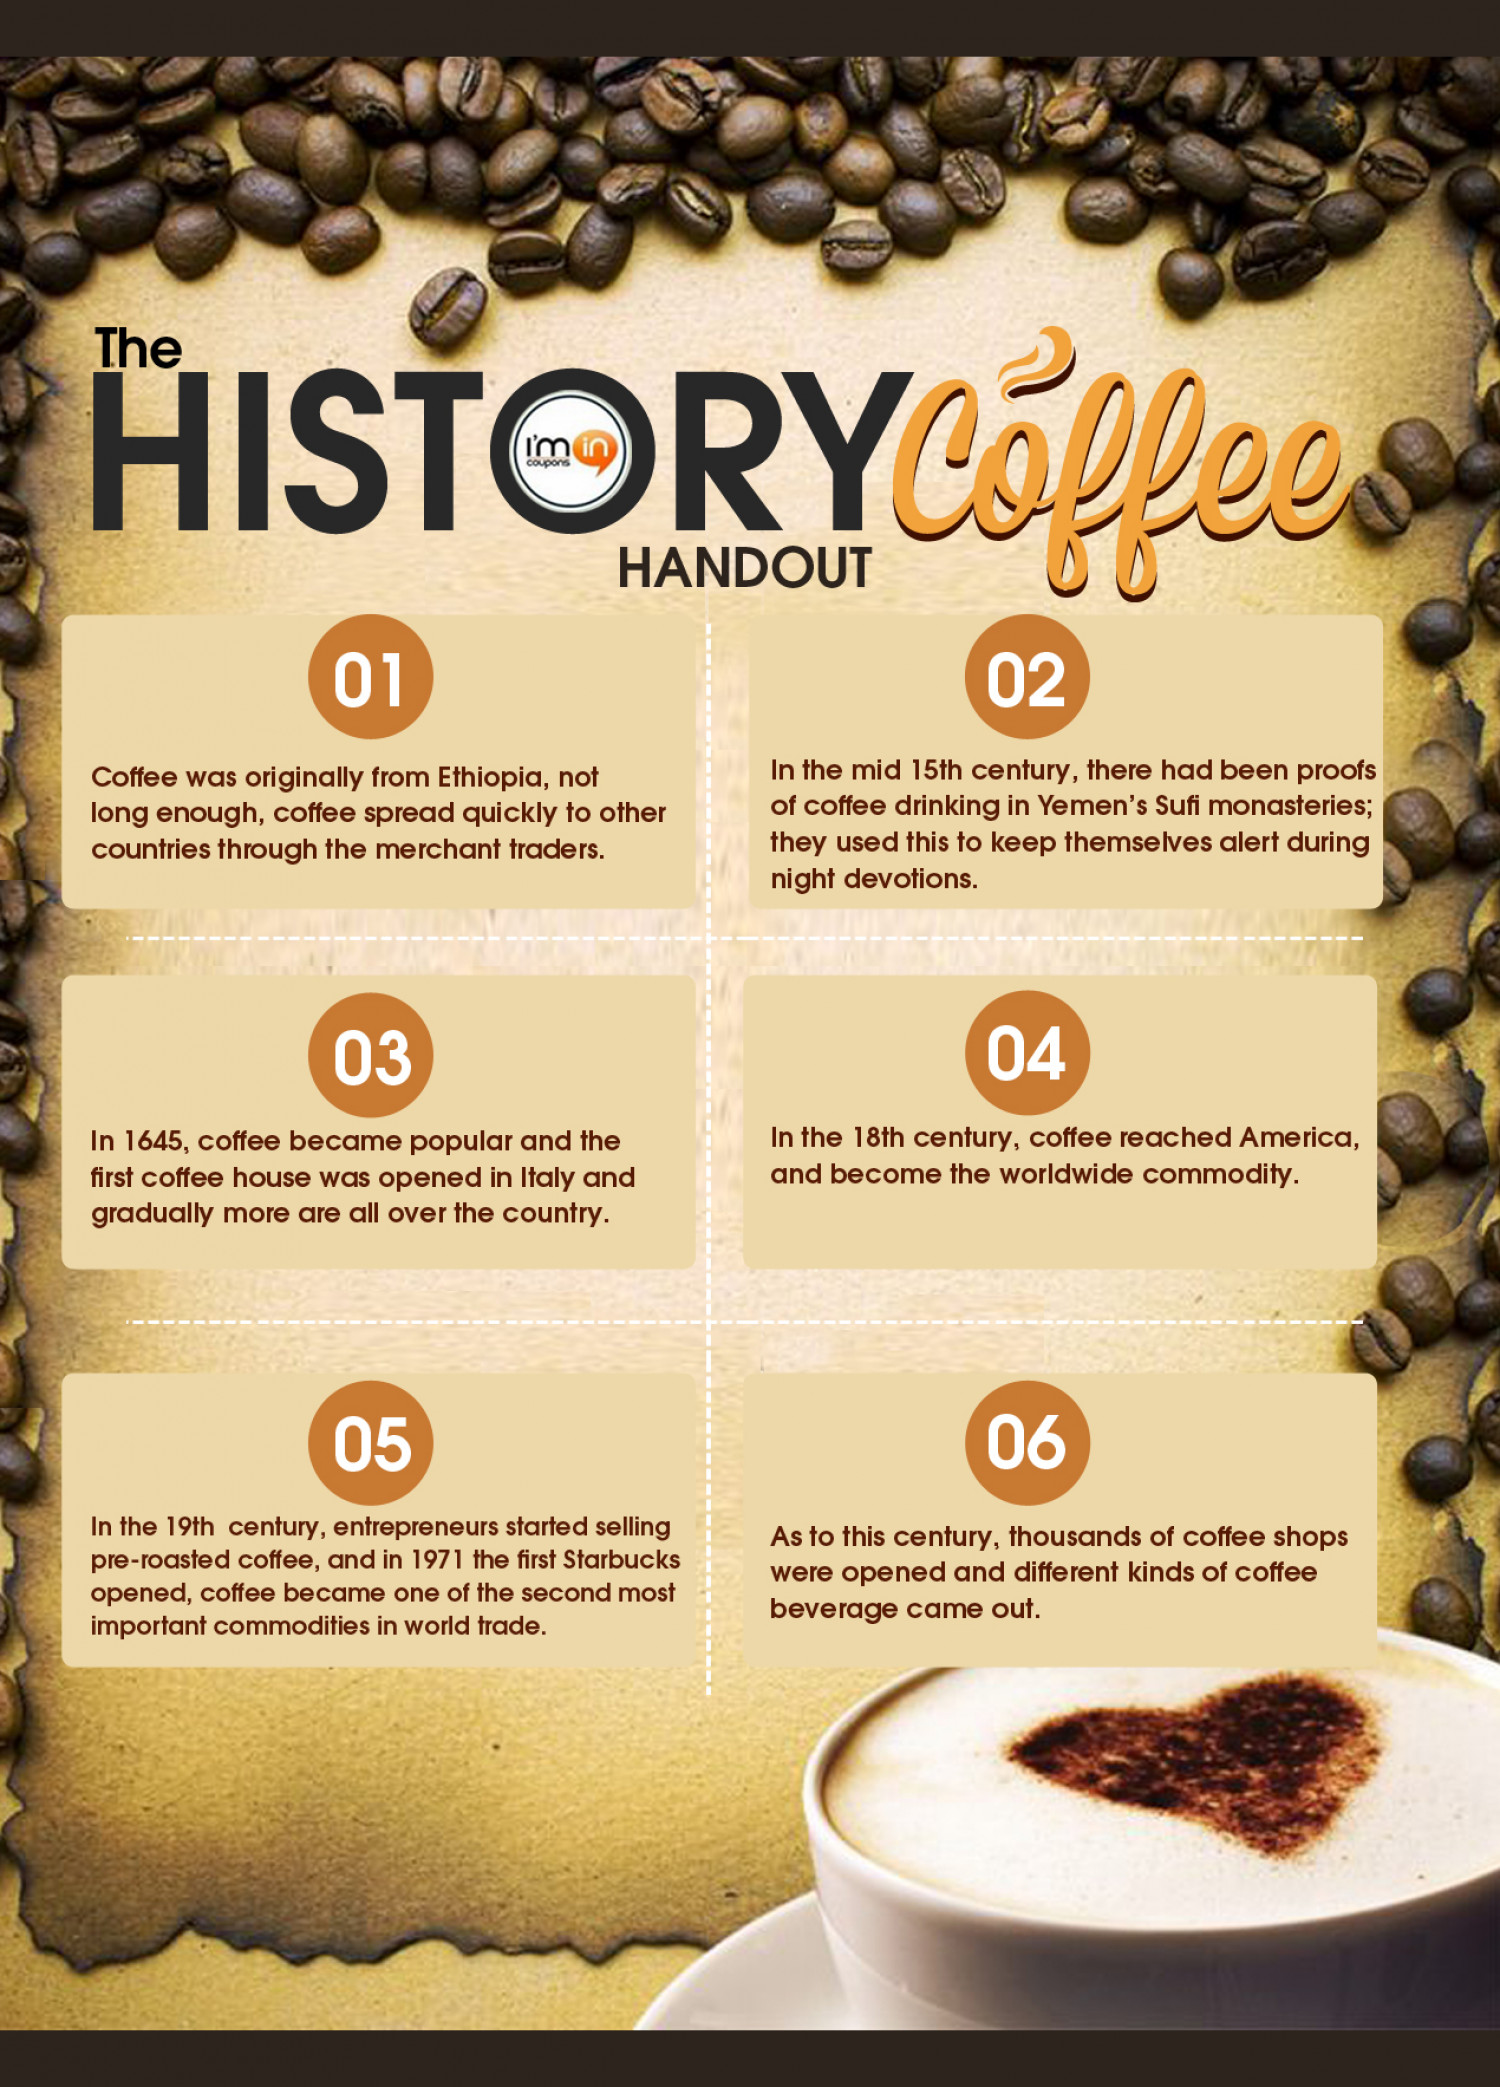 The History Handout - Coffee Infographic